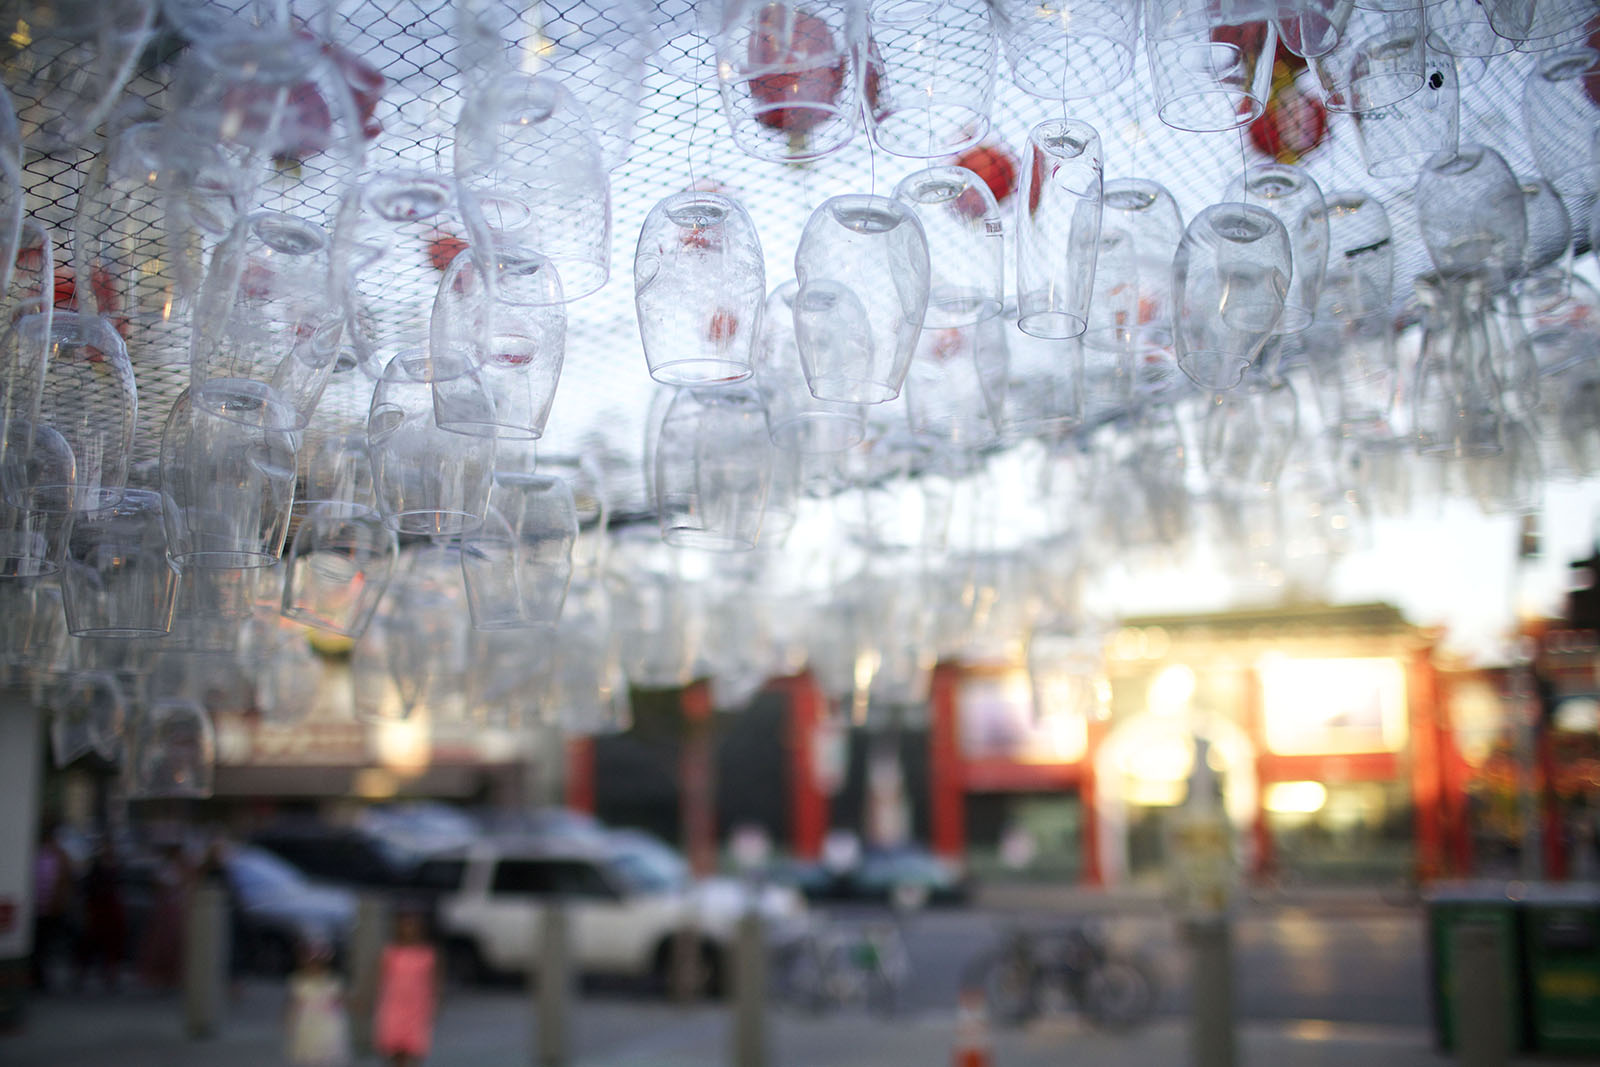 A detail view of the suspended glasses